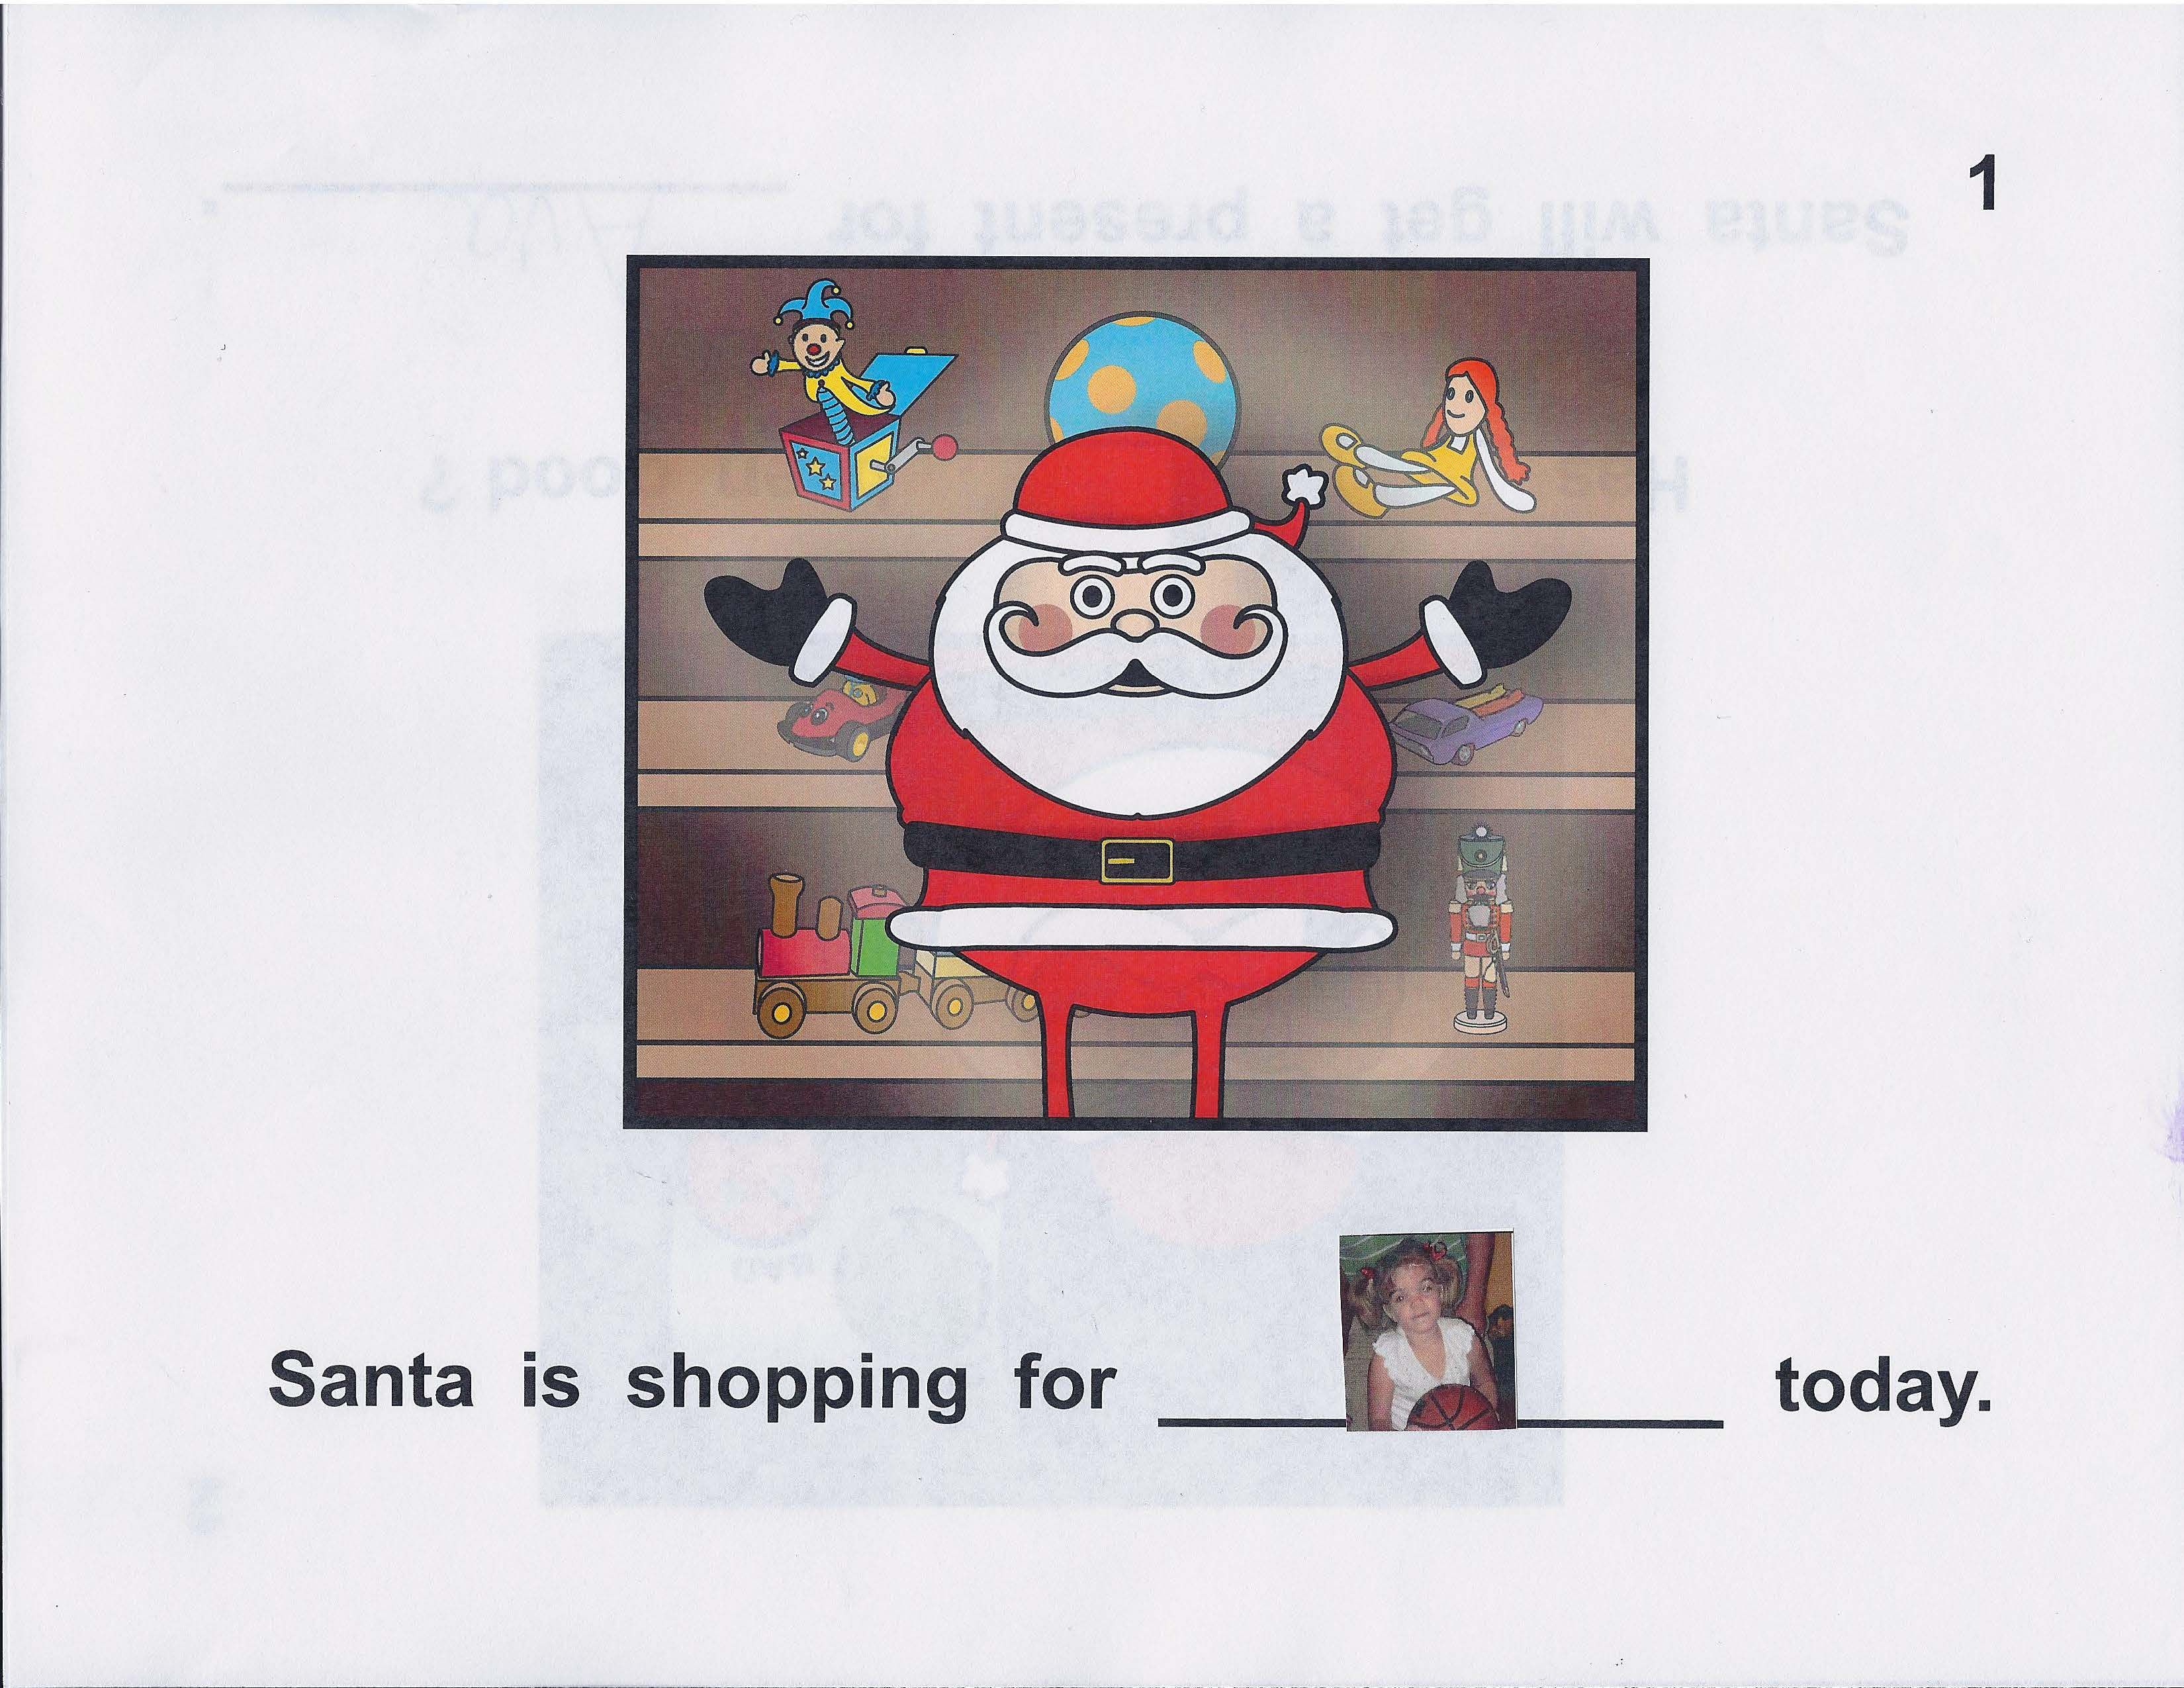 Visit To Santa With N2y Unique Learning System